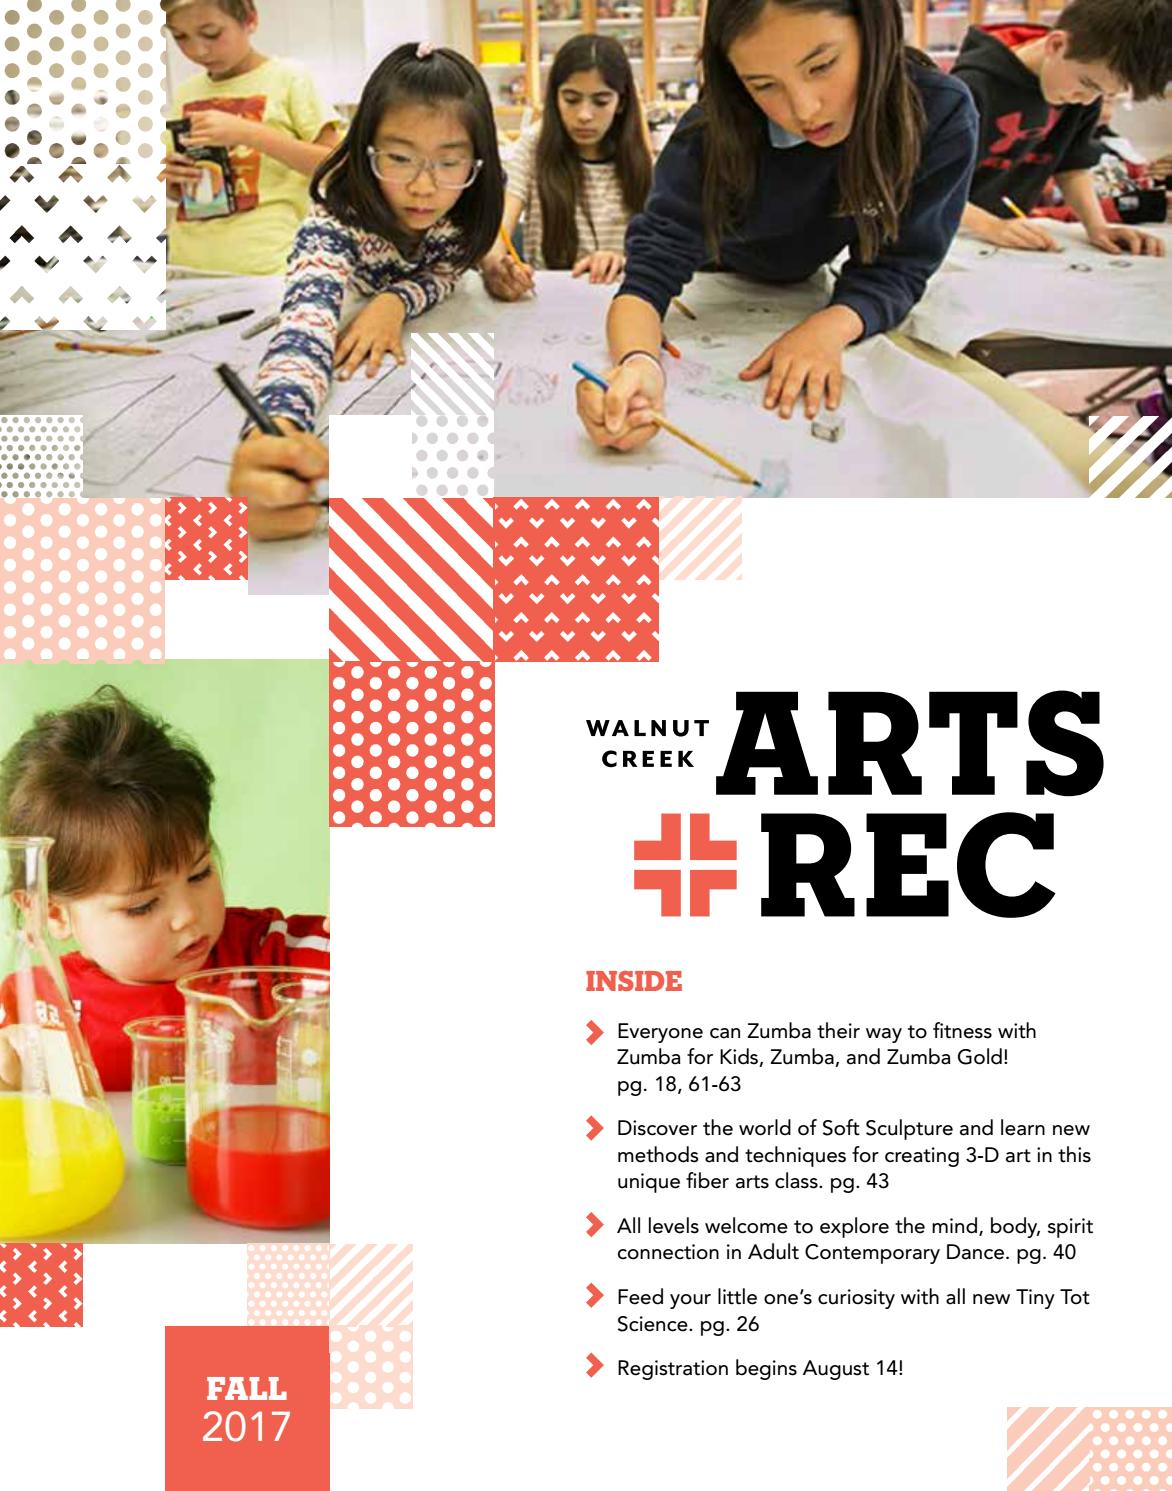 City of Walnut Creek Guide to Arts + Rec - Fall 2017 by City of ...